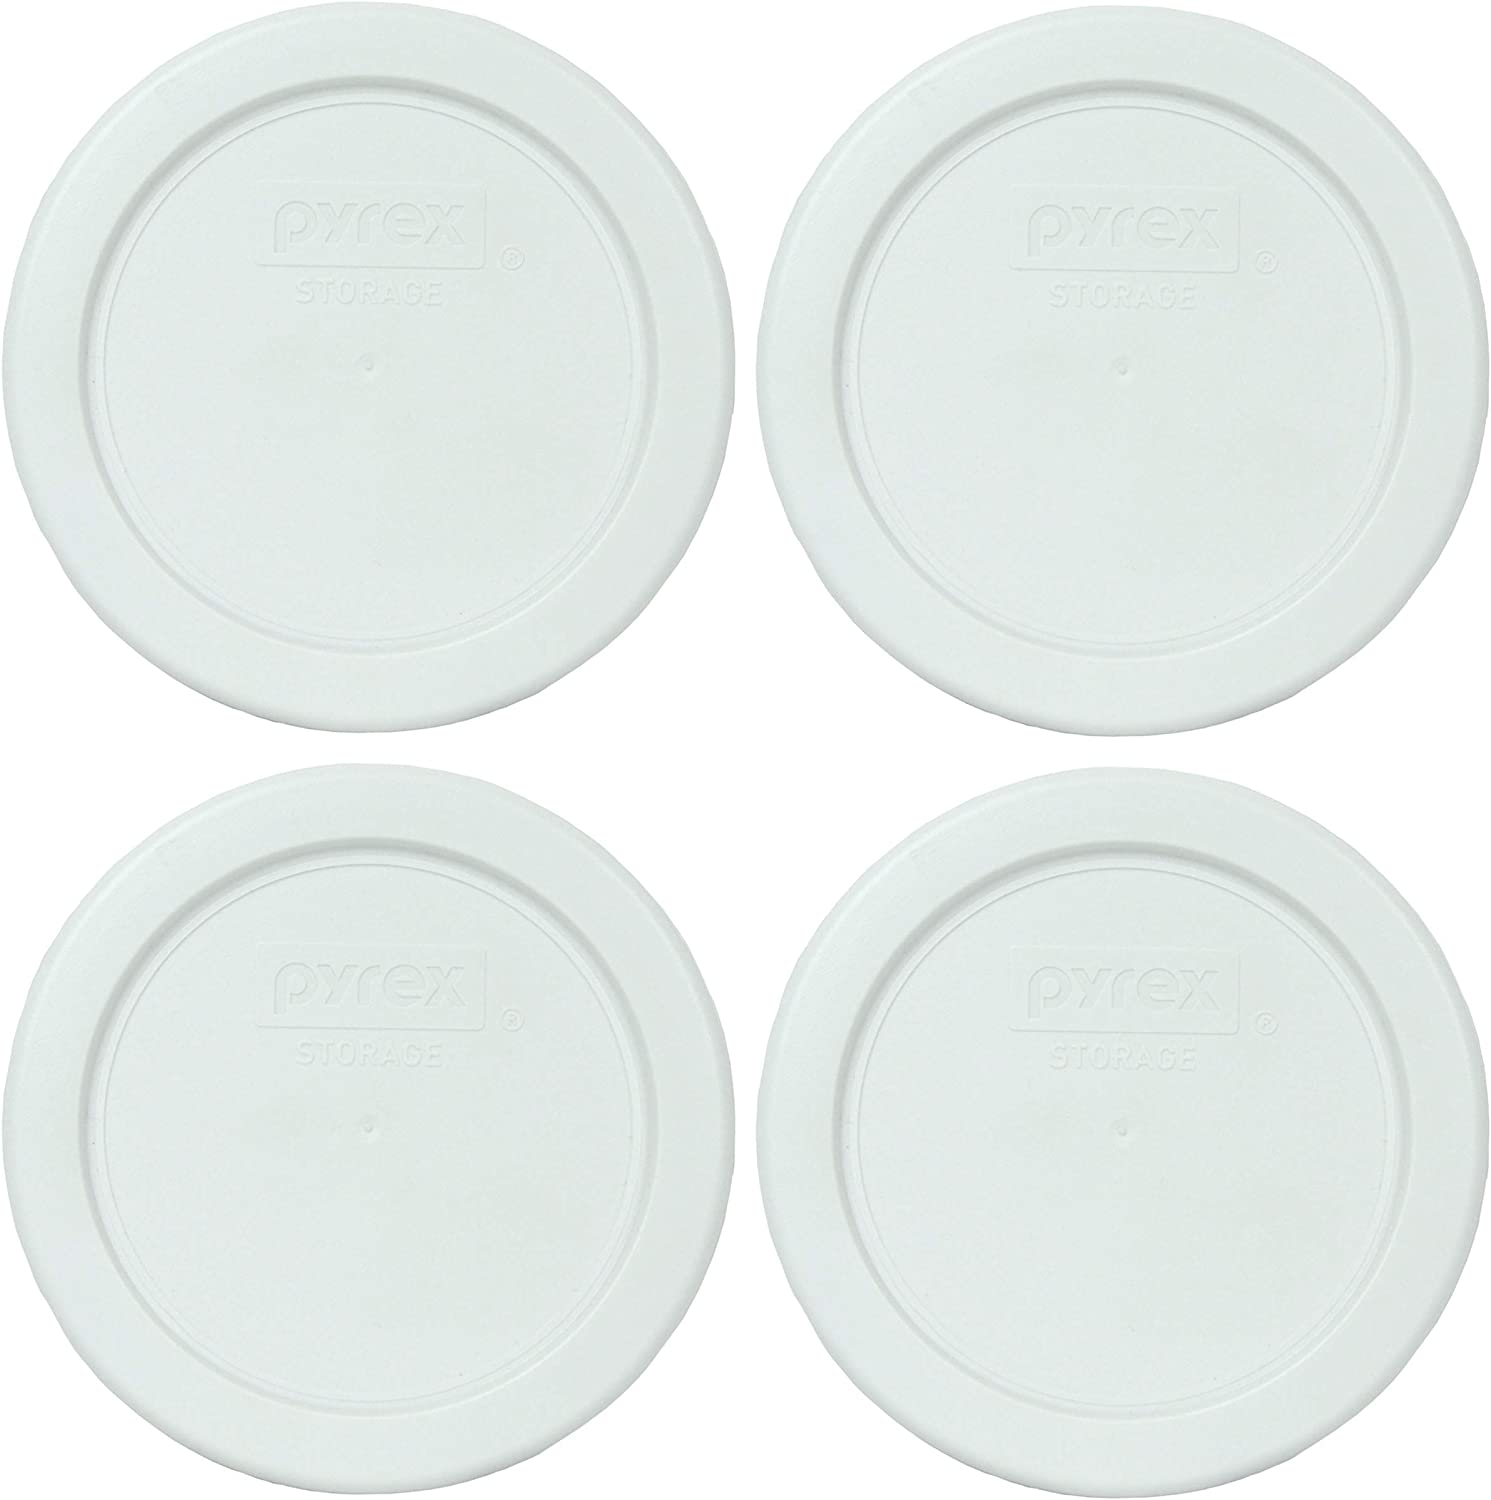 Pyrex 7202-PC White Round Philadelphia Mall Plastic Storage Lids Replacement Fixed price for sale Food